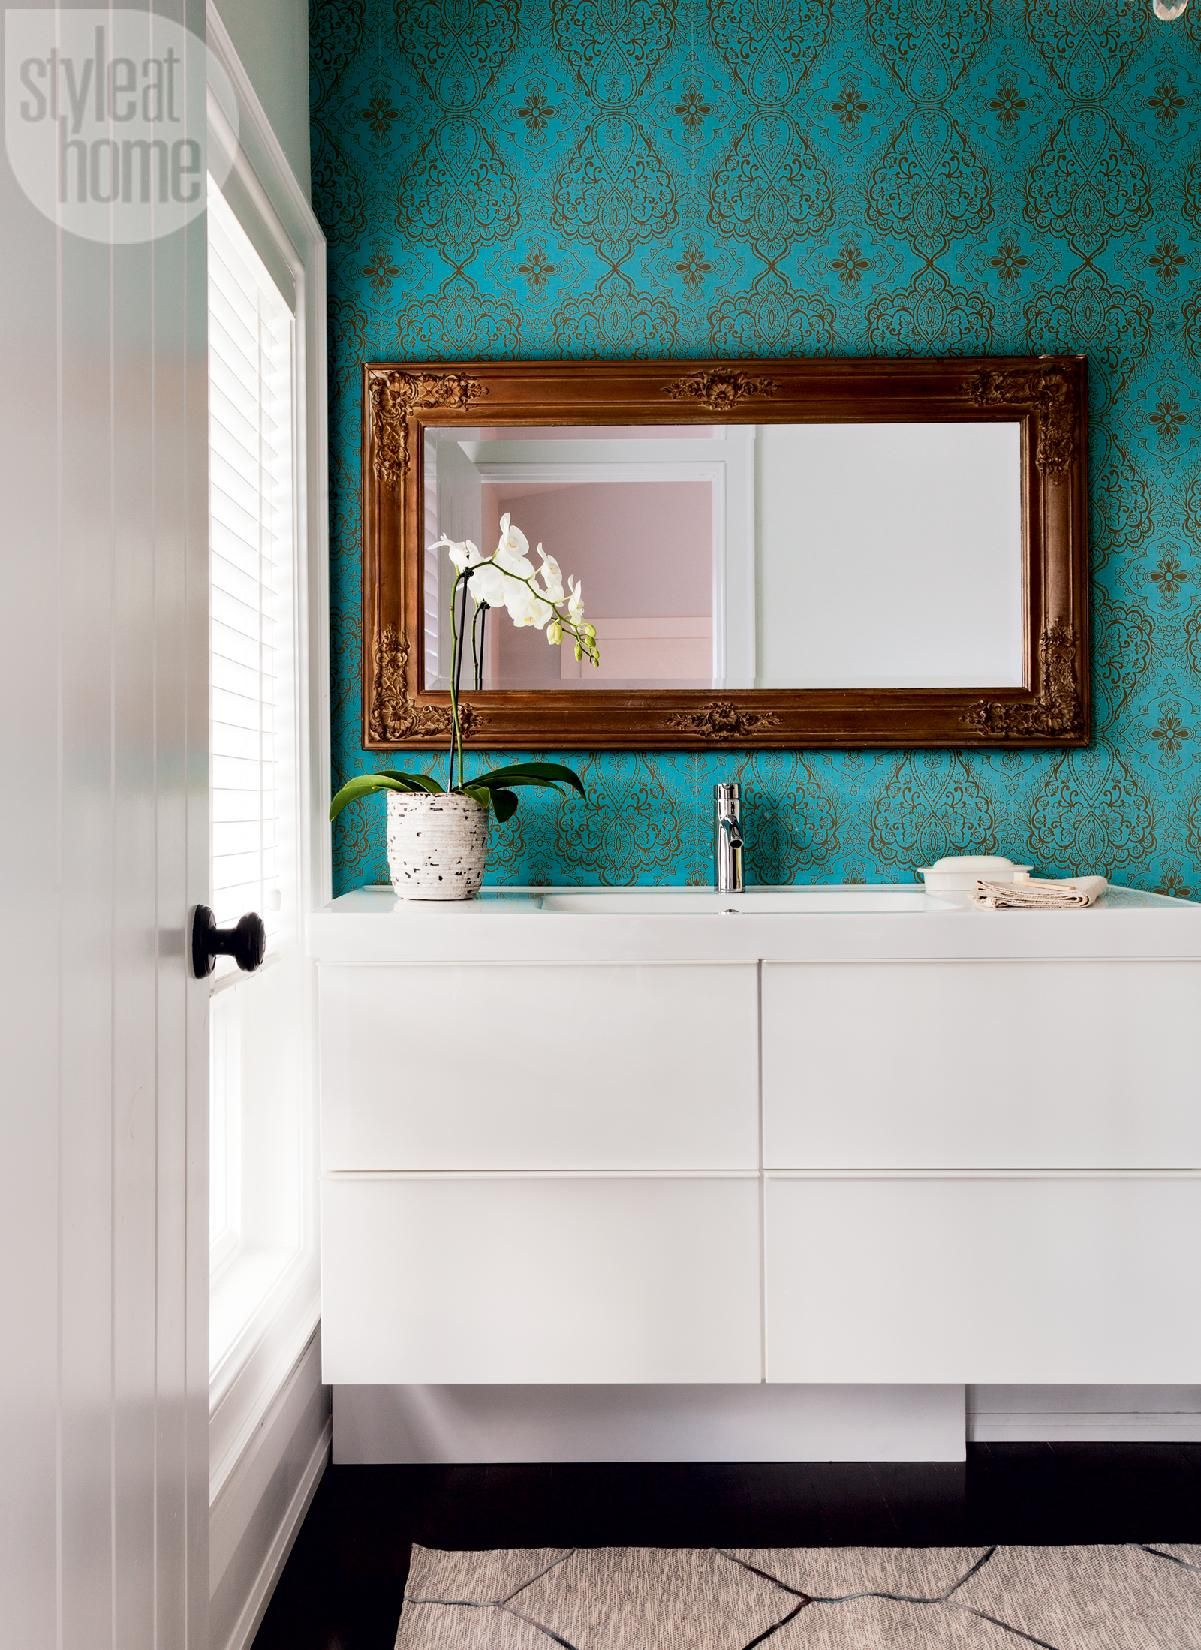 Easy bathroom design formulas for instant style success | Bathroom ...